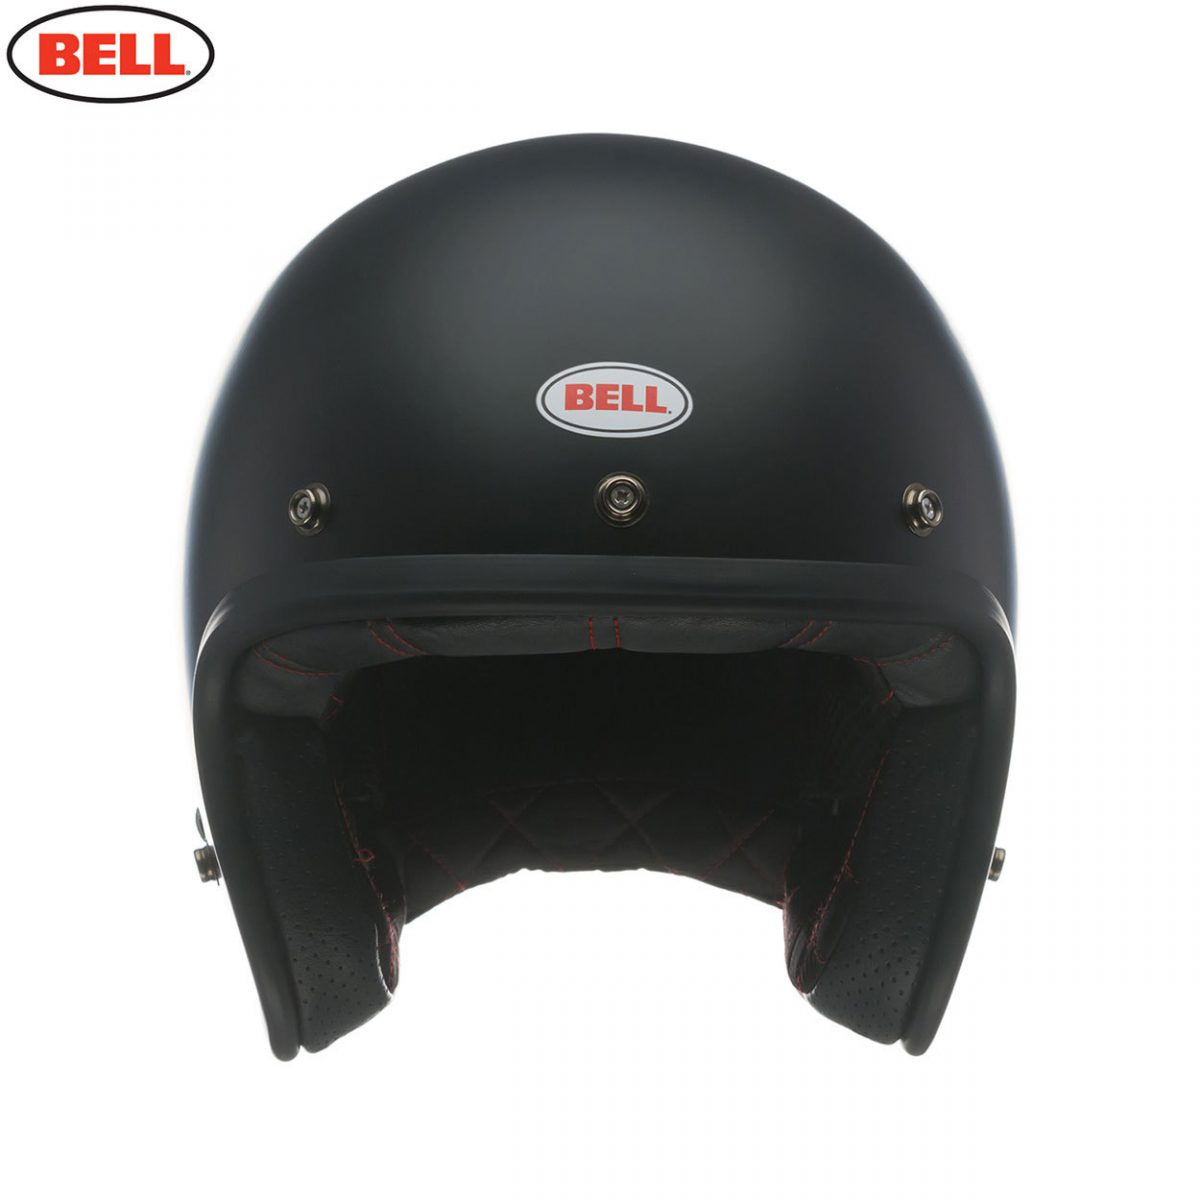 Bell Cruiser Custom 500 Adult Helmet Solid Matte Black